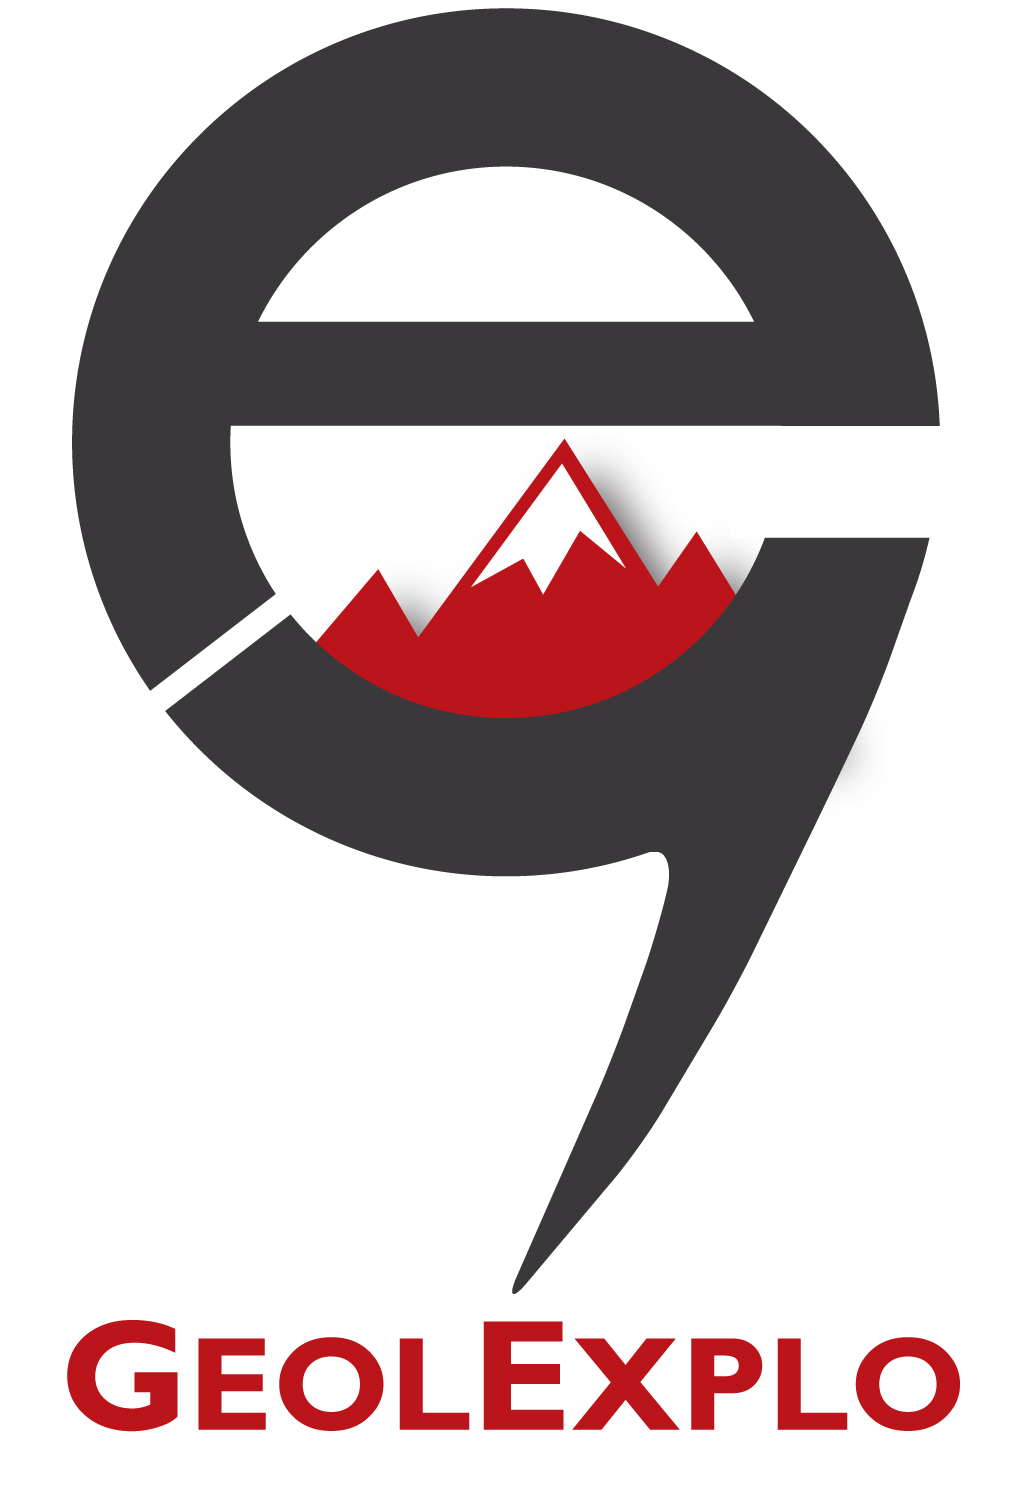 geoterram_logo_grey_red_v2